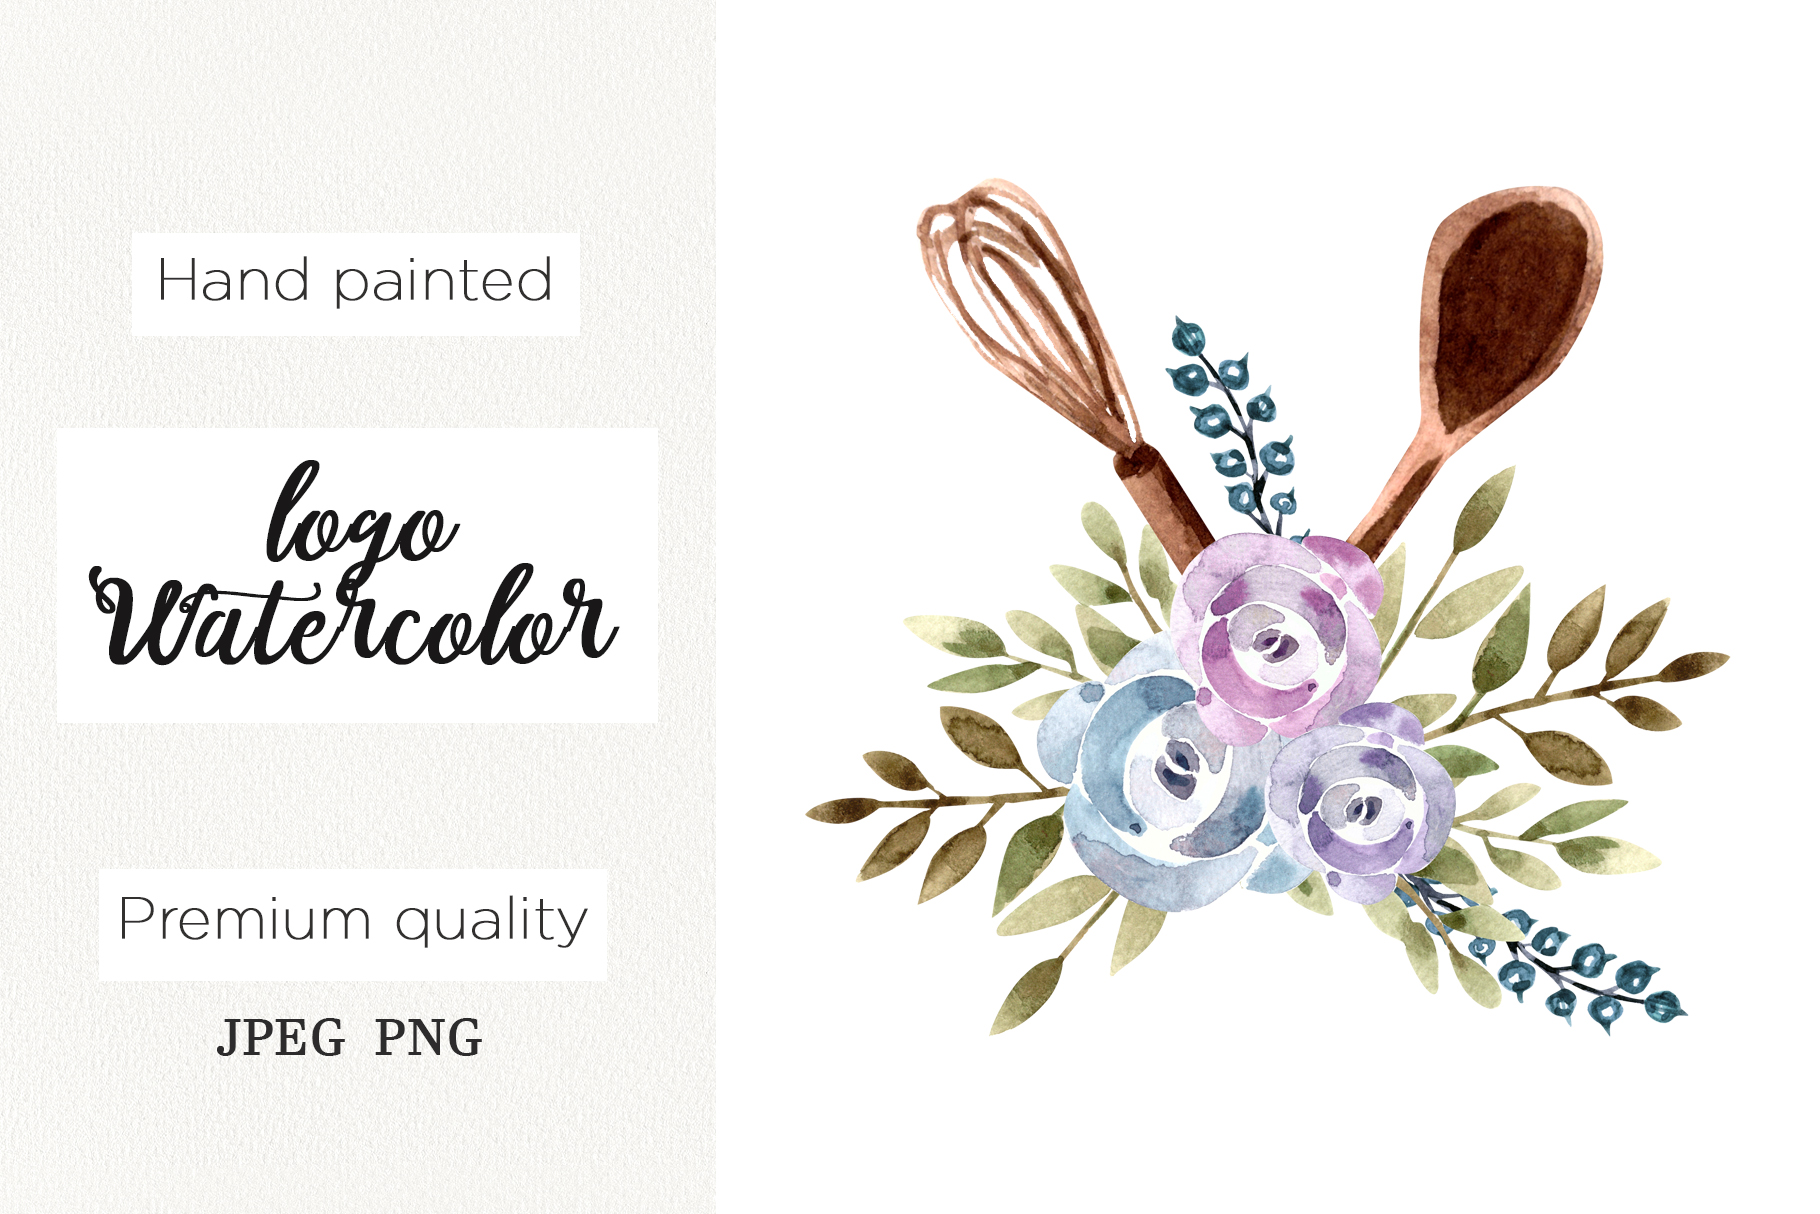 Download Free Watercolor Logo Floral Whisk For Bakery Graphic By Marisid11 for Cricut Explore, Silhouette and other cutting machines.